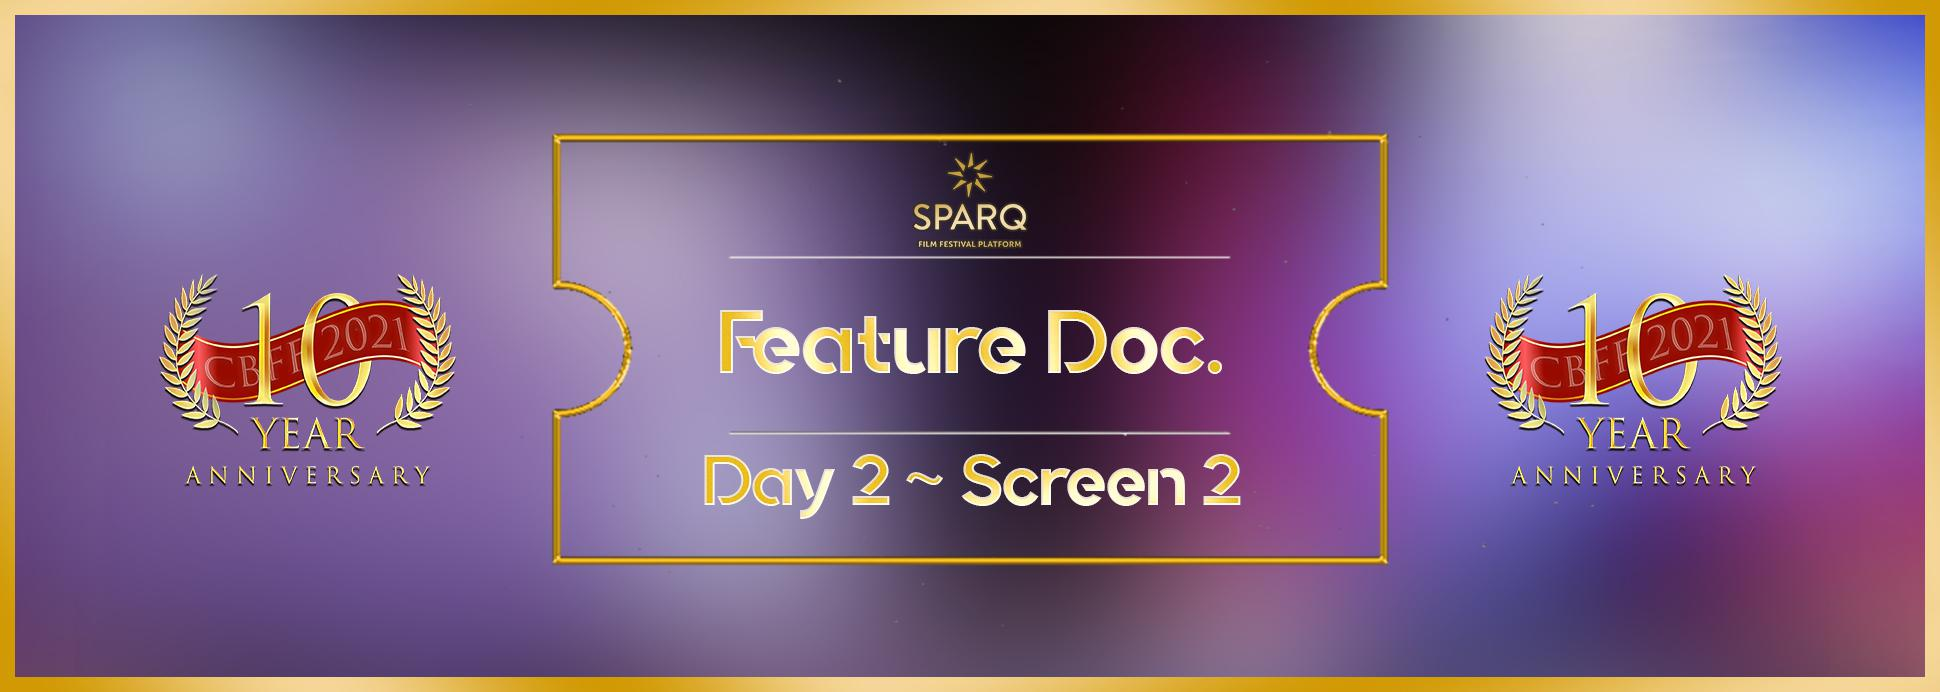 Day 2, Screen 2: Feature Documentary